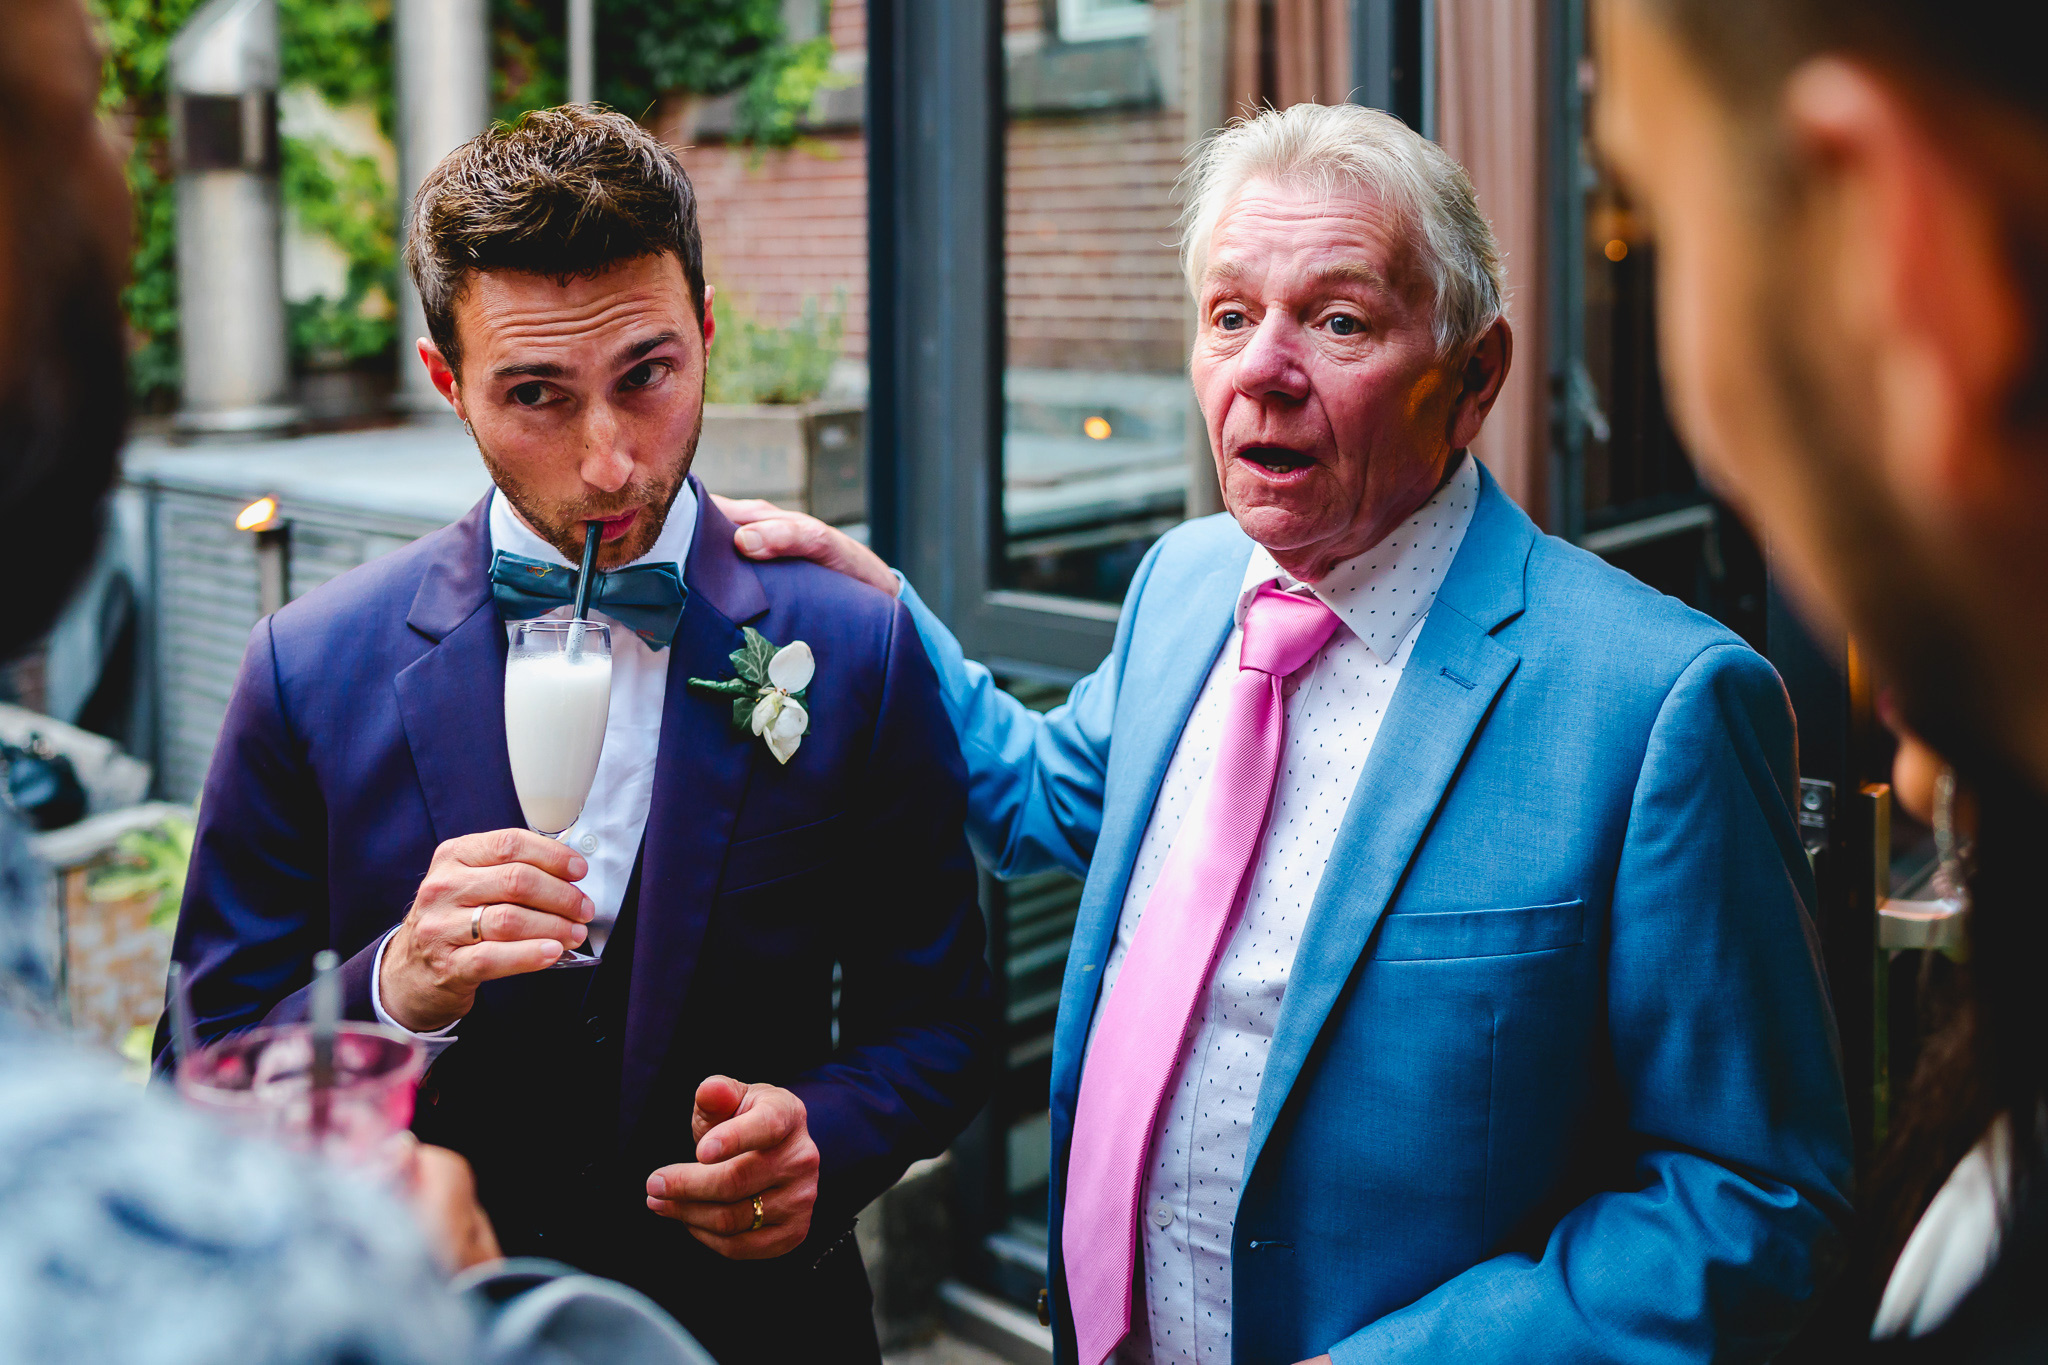 yesido_jamesyves_amsterdam_gaywedding_07335